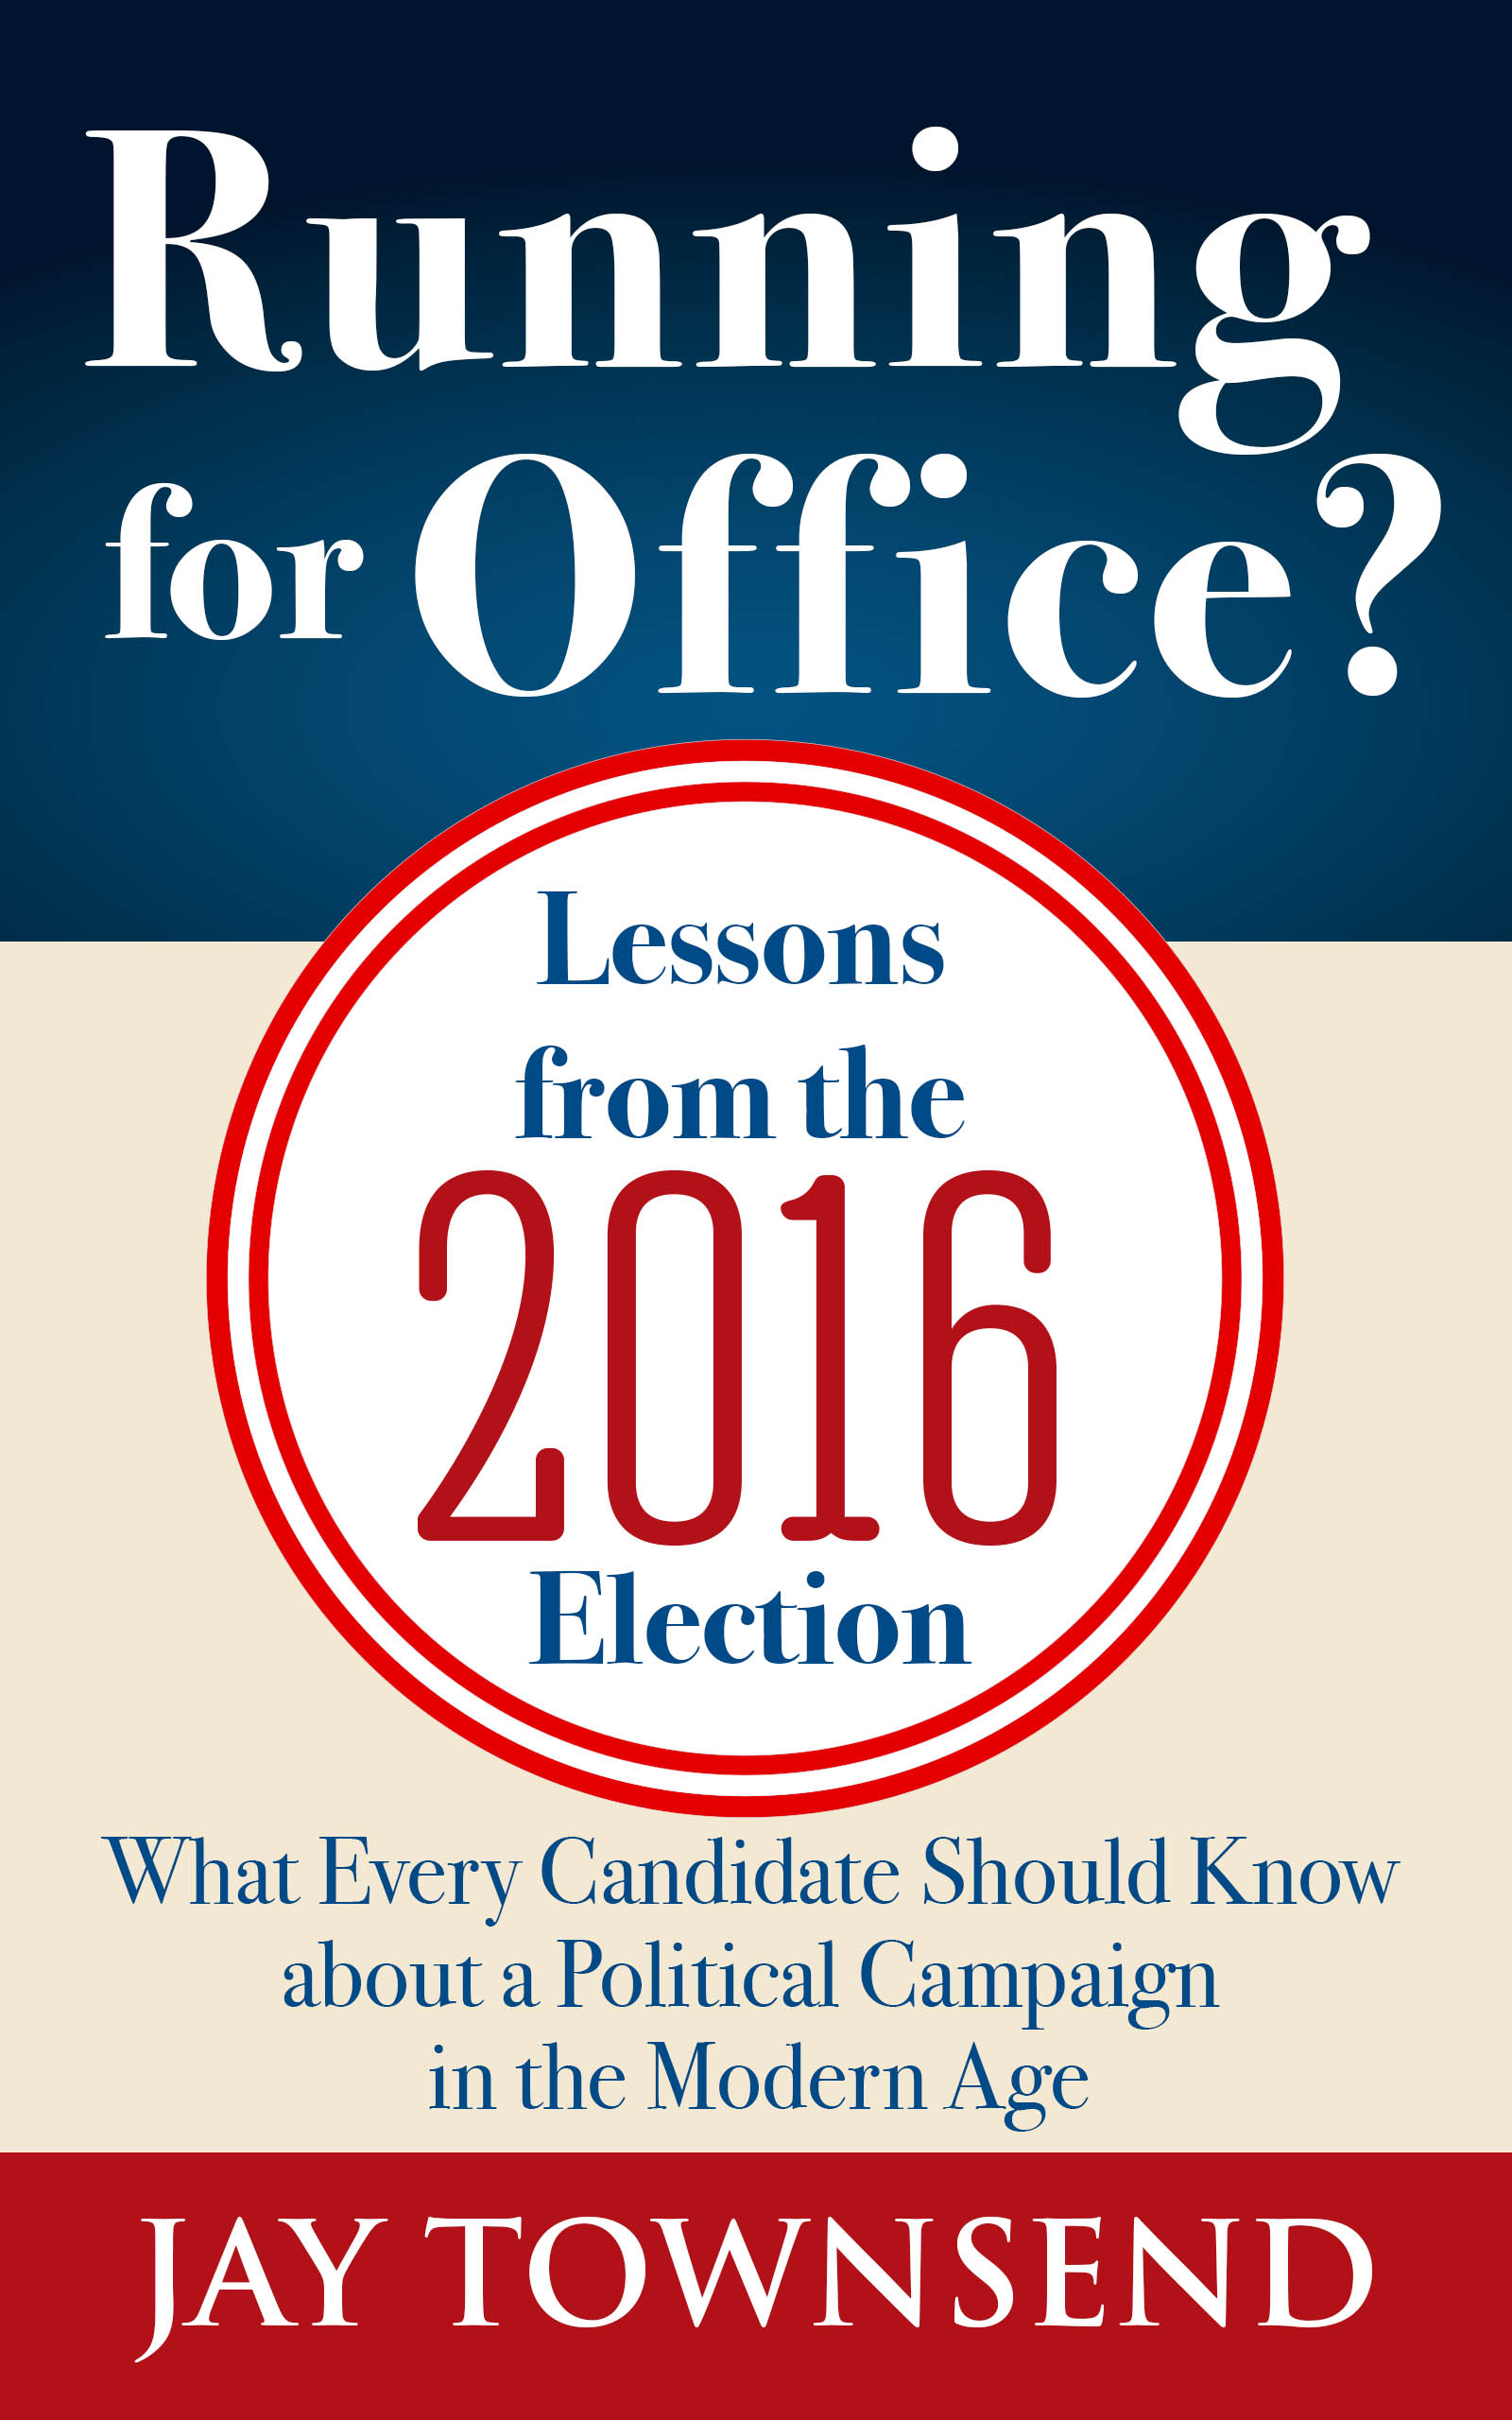 Lessons of the 2016 Election EVERY Candidate Should Know